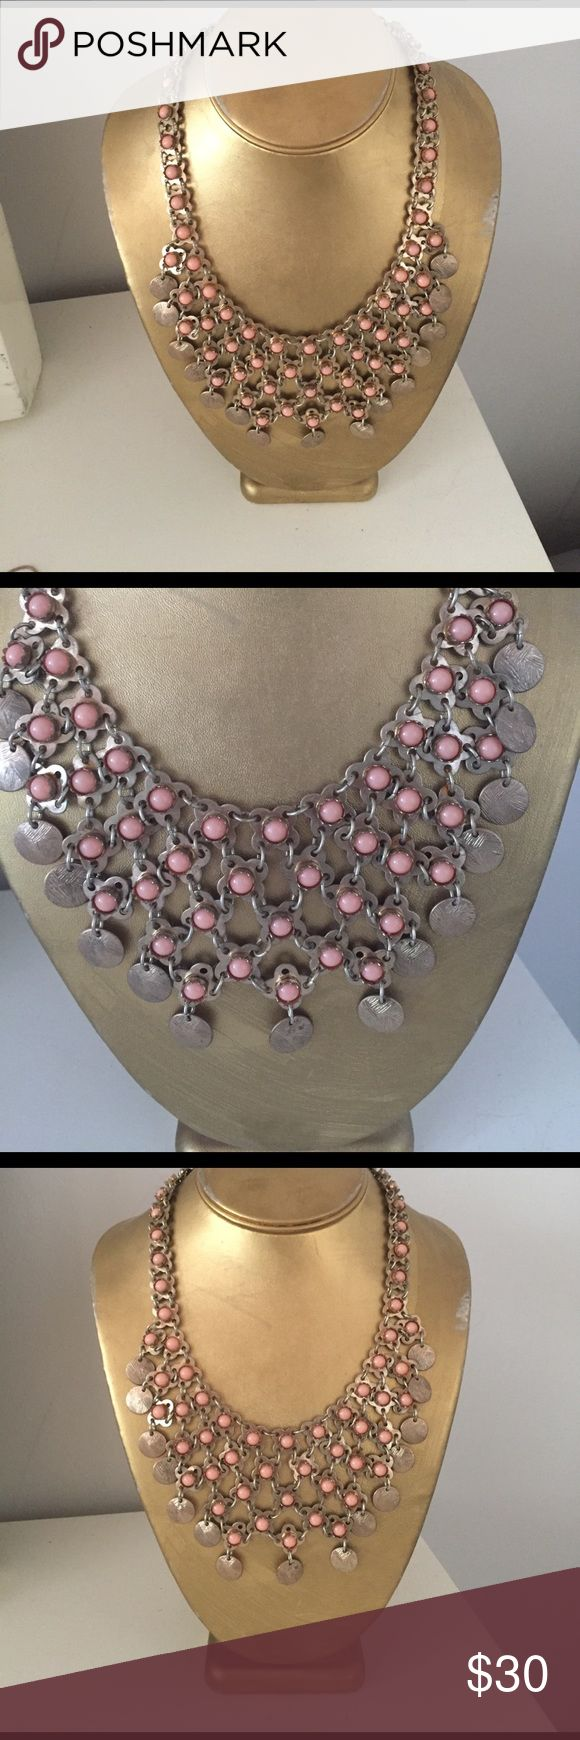 Coral statement necklace Gold and coral bib statement necklace Ann Taylor Jewelry Necklaces